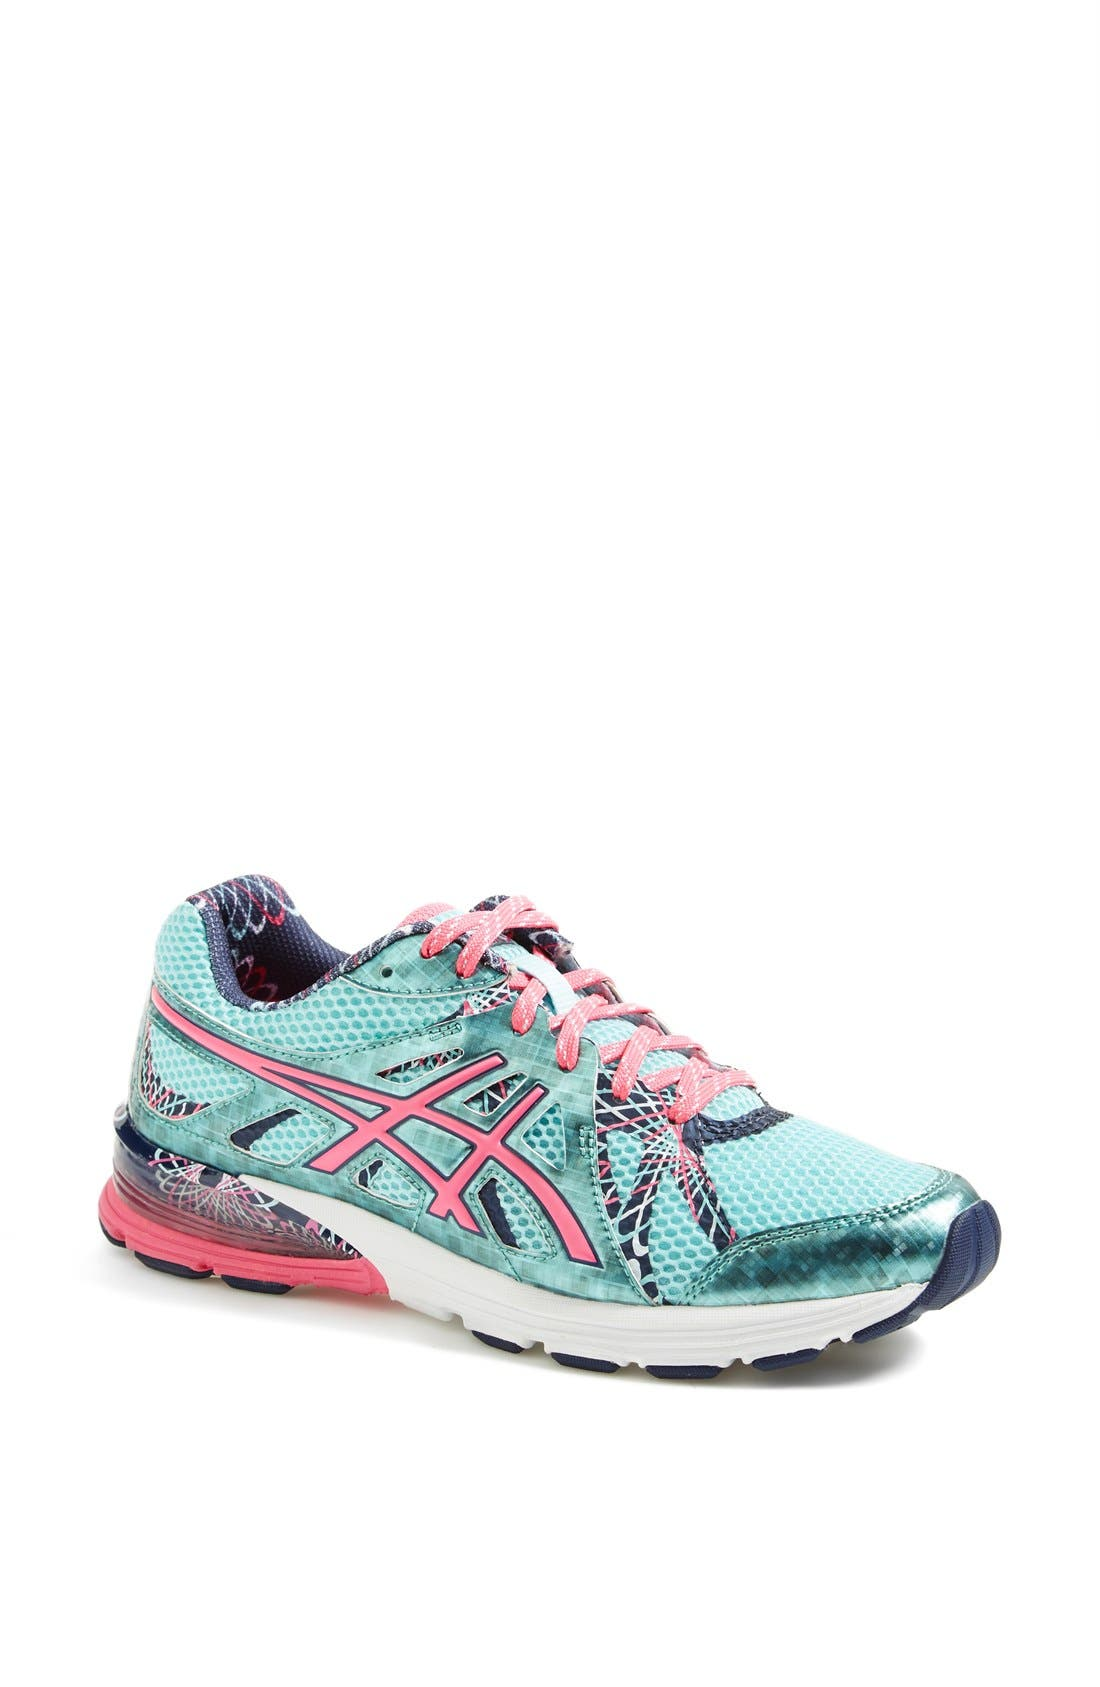 Main Image - ASICS® 'GEL-Preleus™' Running Shoe (Women)